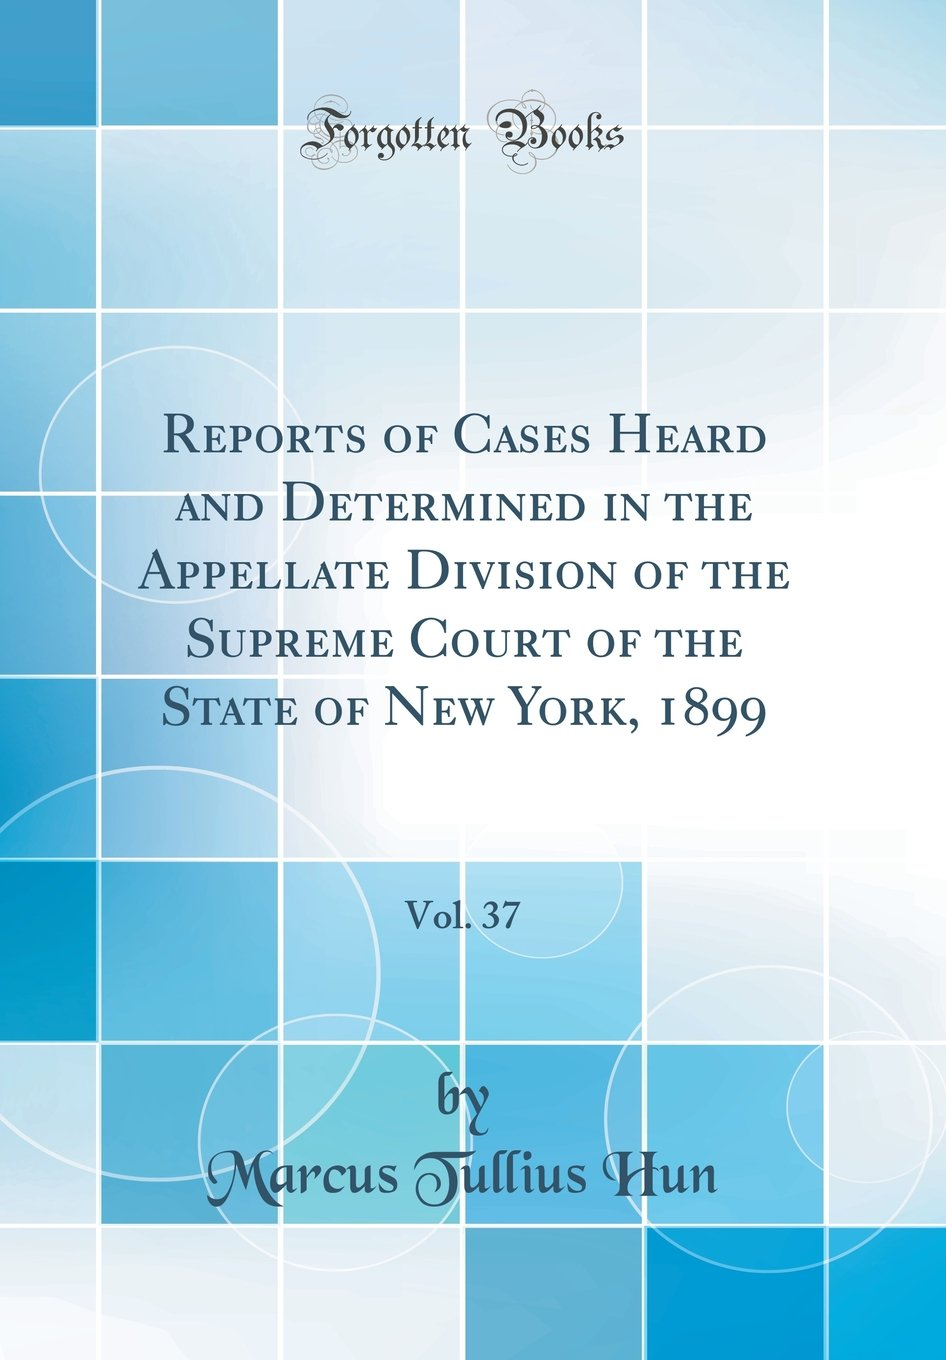 Reports of Cases Heard and Determined in the Appellate Division of the Supreme Court of the State of New York, 1899, Vol. 37 (Classic Reprint) PDF